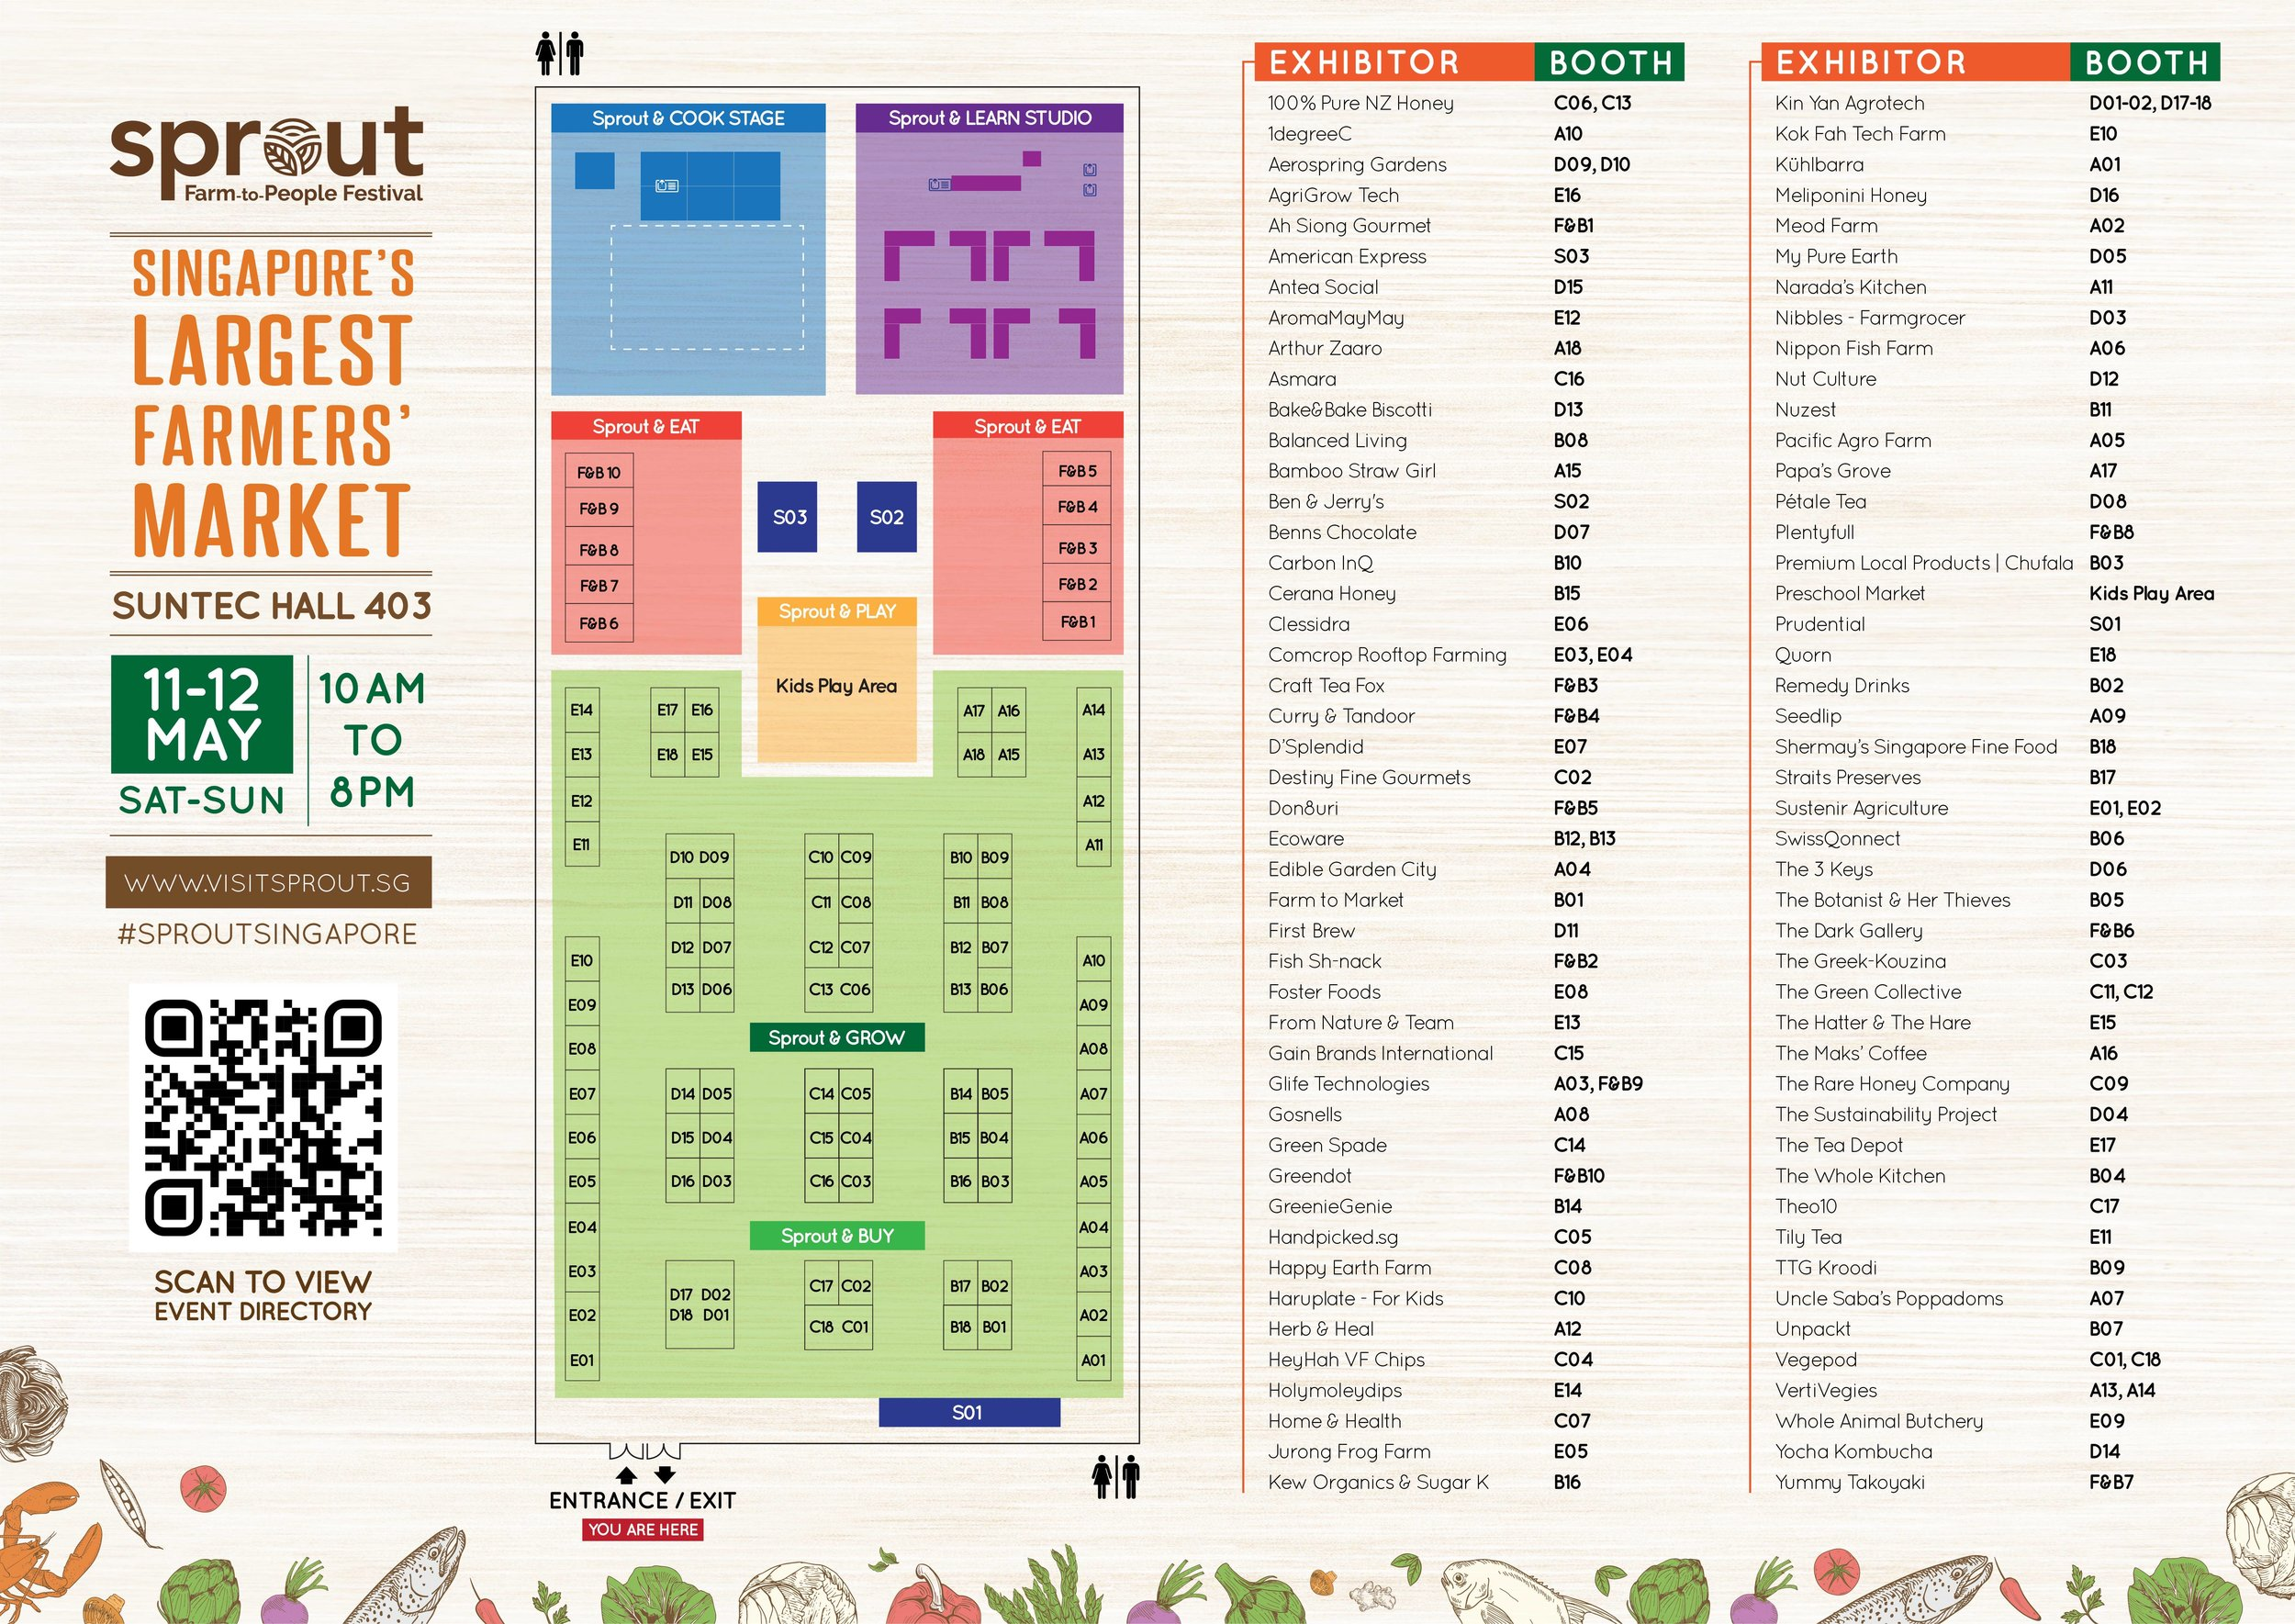 Sprout 2019 - Event Directory Floor Plan